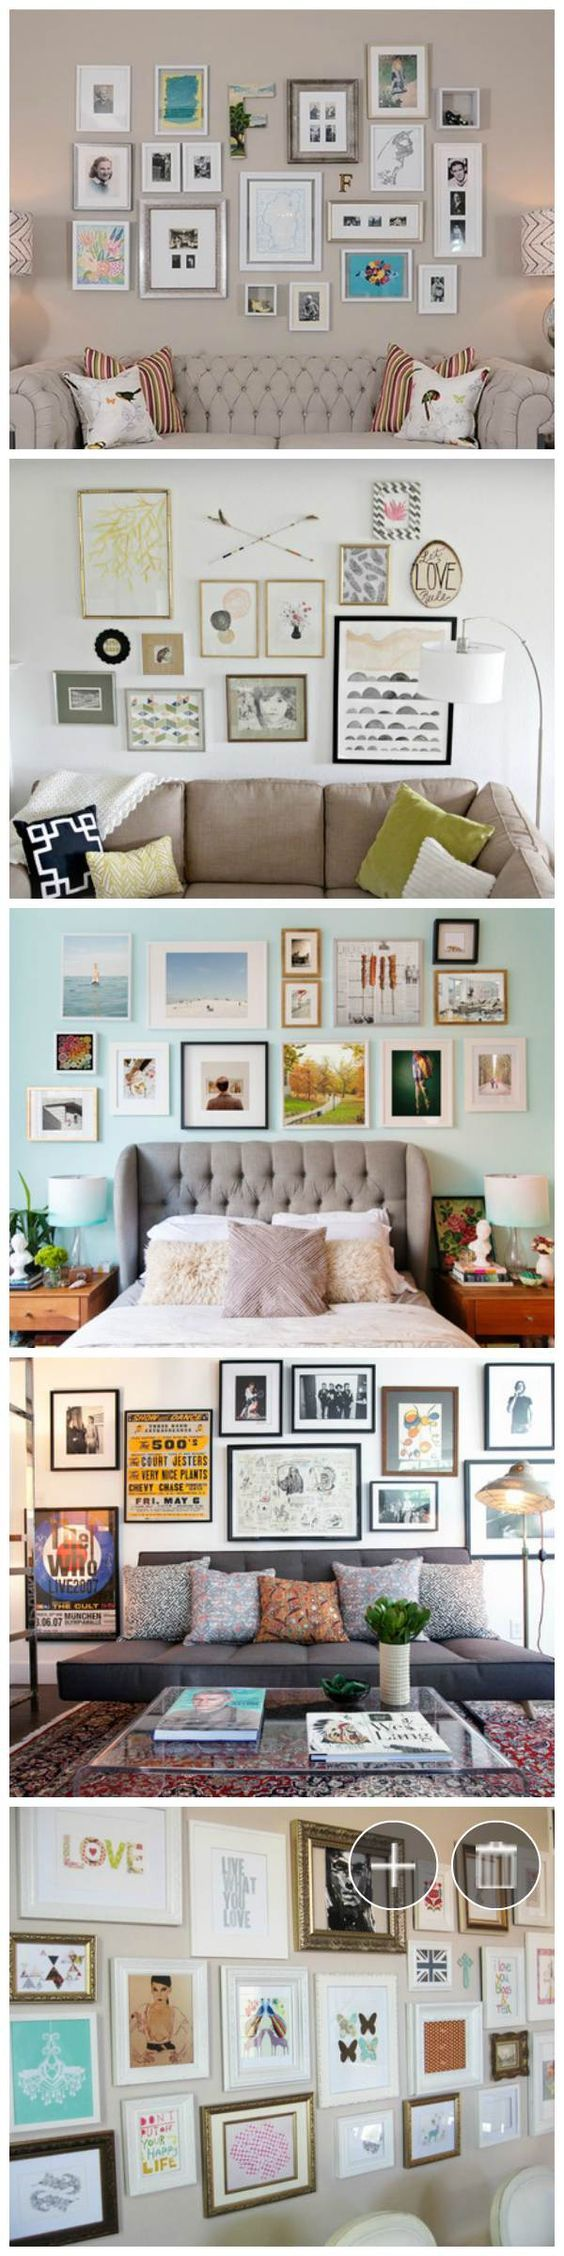 15 Best Great Design Ideas Images On Pinterest For The Home Push Pull Pot Wiring Group Picture Image By Tag Keywordpictures Gallery Wall Frame Art Walls Diy Decorating Ikea Designs Make Jewelry